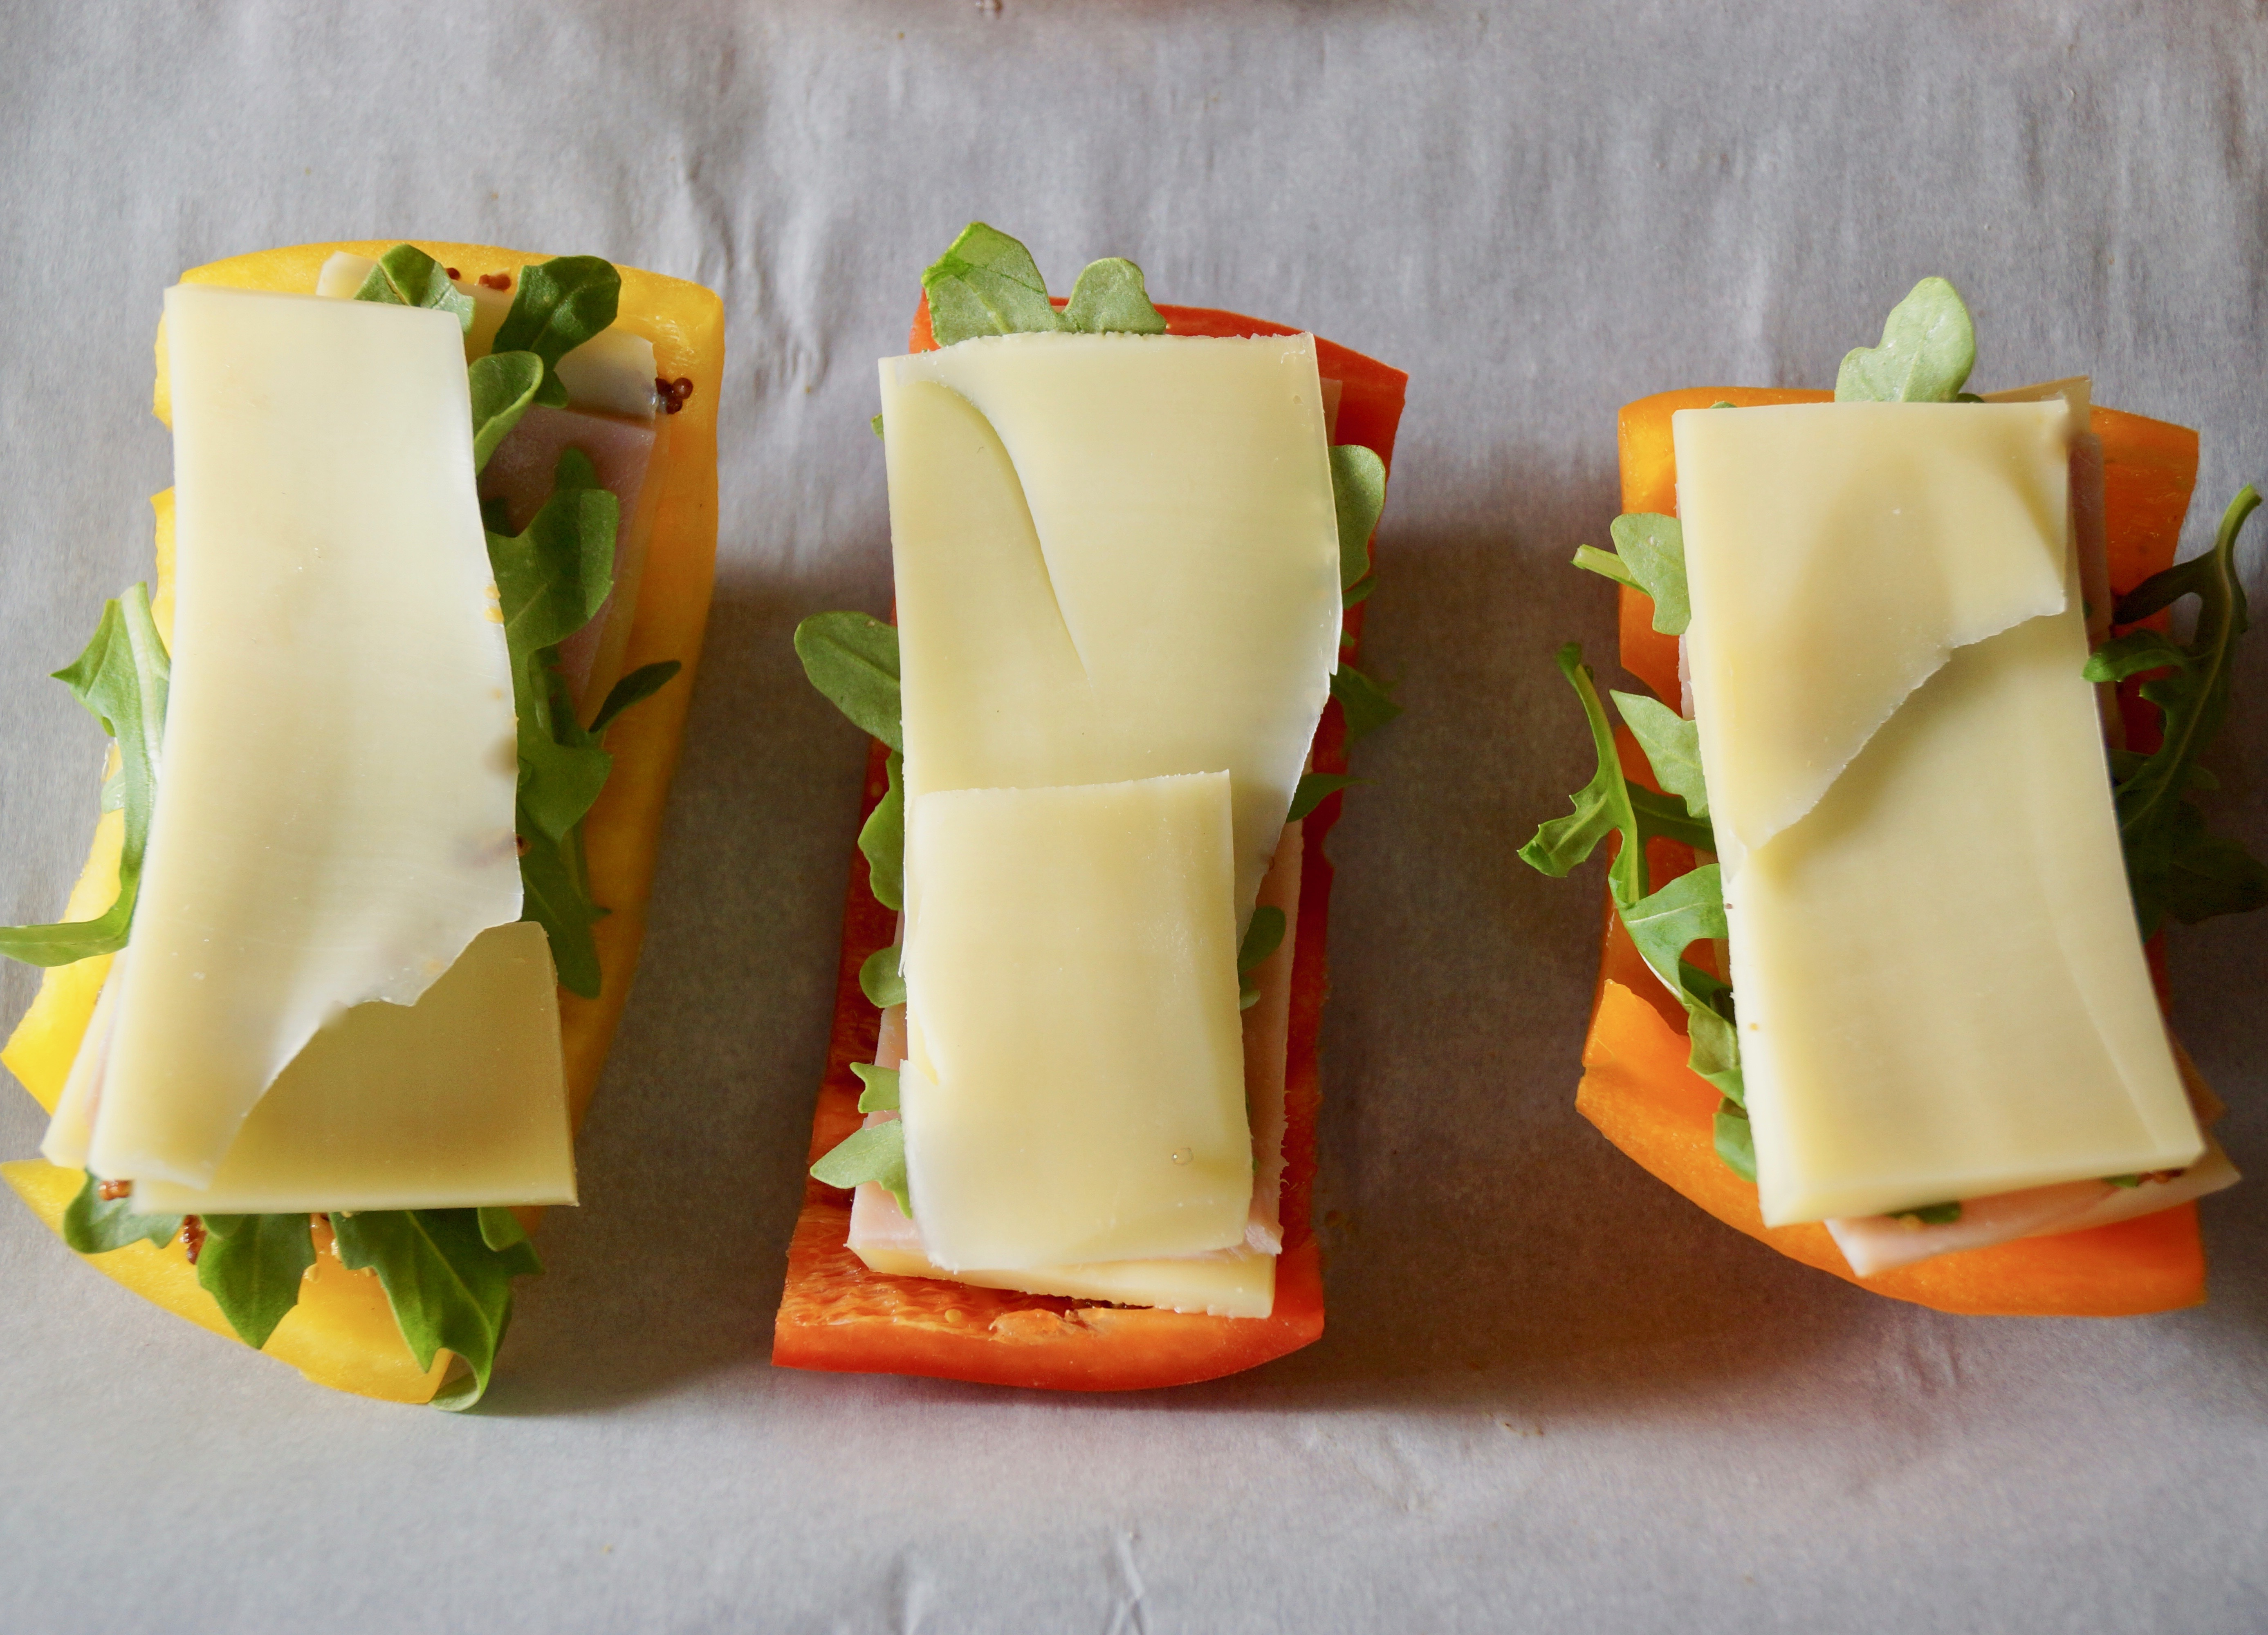 Breadless Bell Pepper 6Grilled Ham and Cheese Sandwich Recipe -- The super fun, breadless sandwich is over-the-top delicious! I made it with peppers because I think it's tasty, and it also happens to be an awesome gluten-free dish!